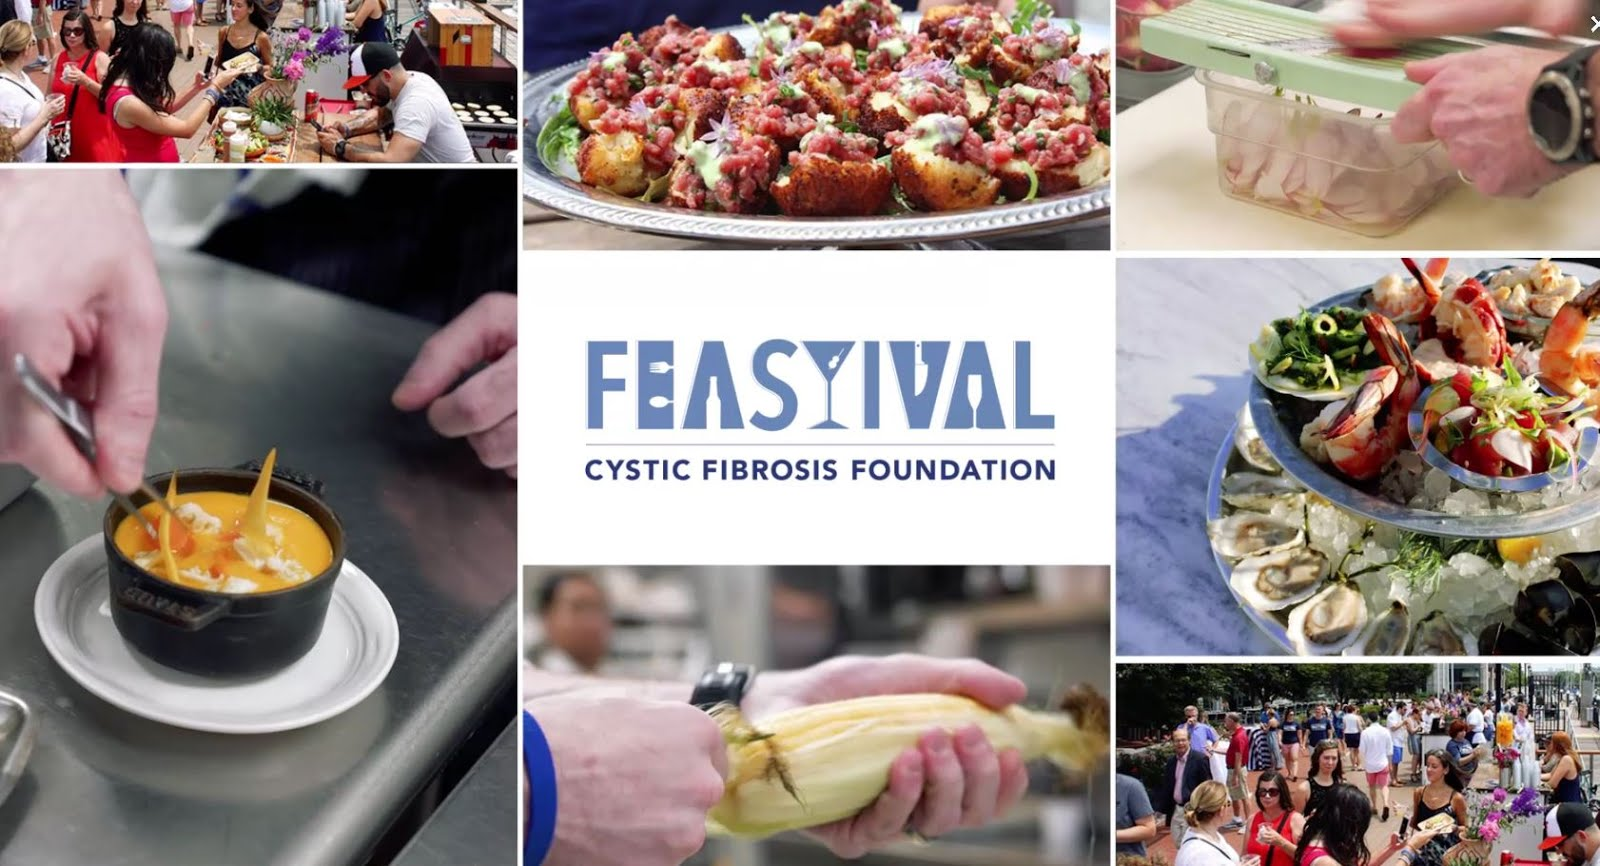 FEASTIVAL-Cystic Fibrosis fundraiser